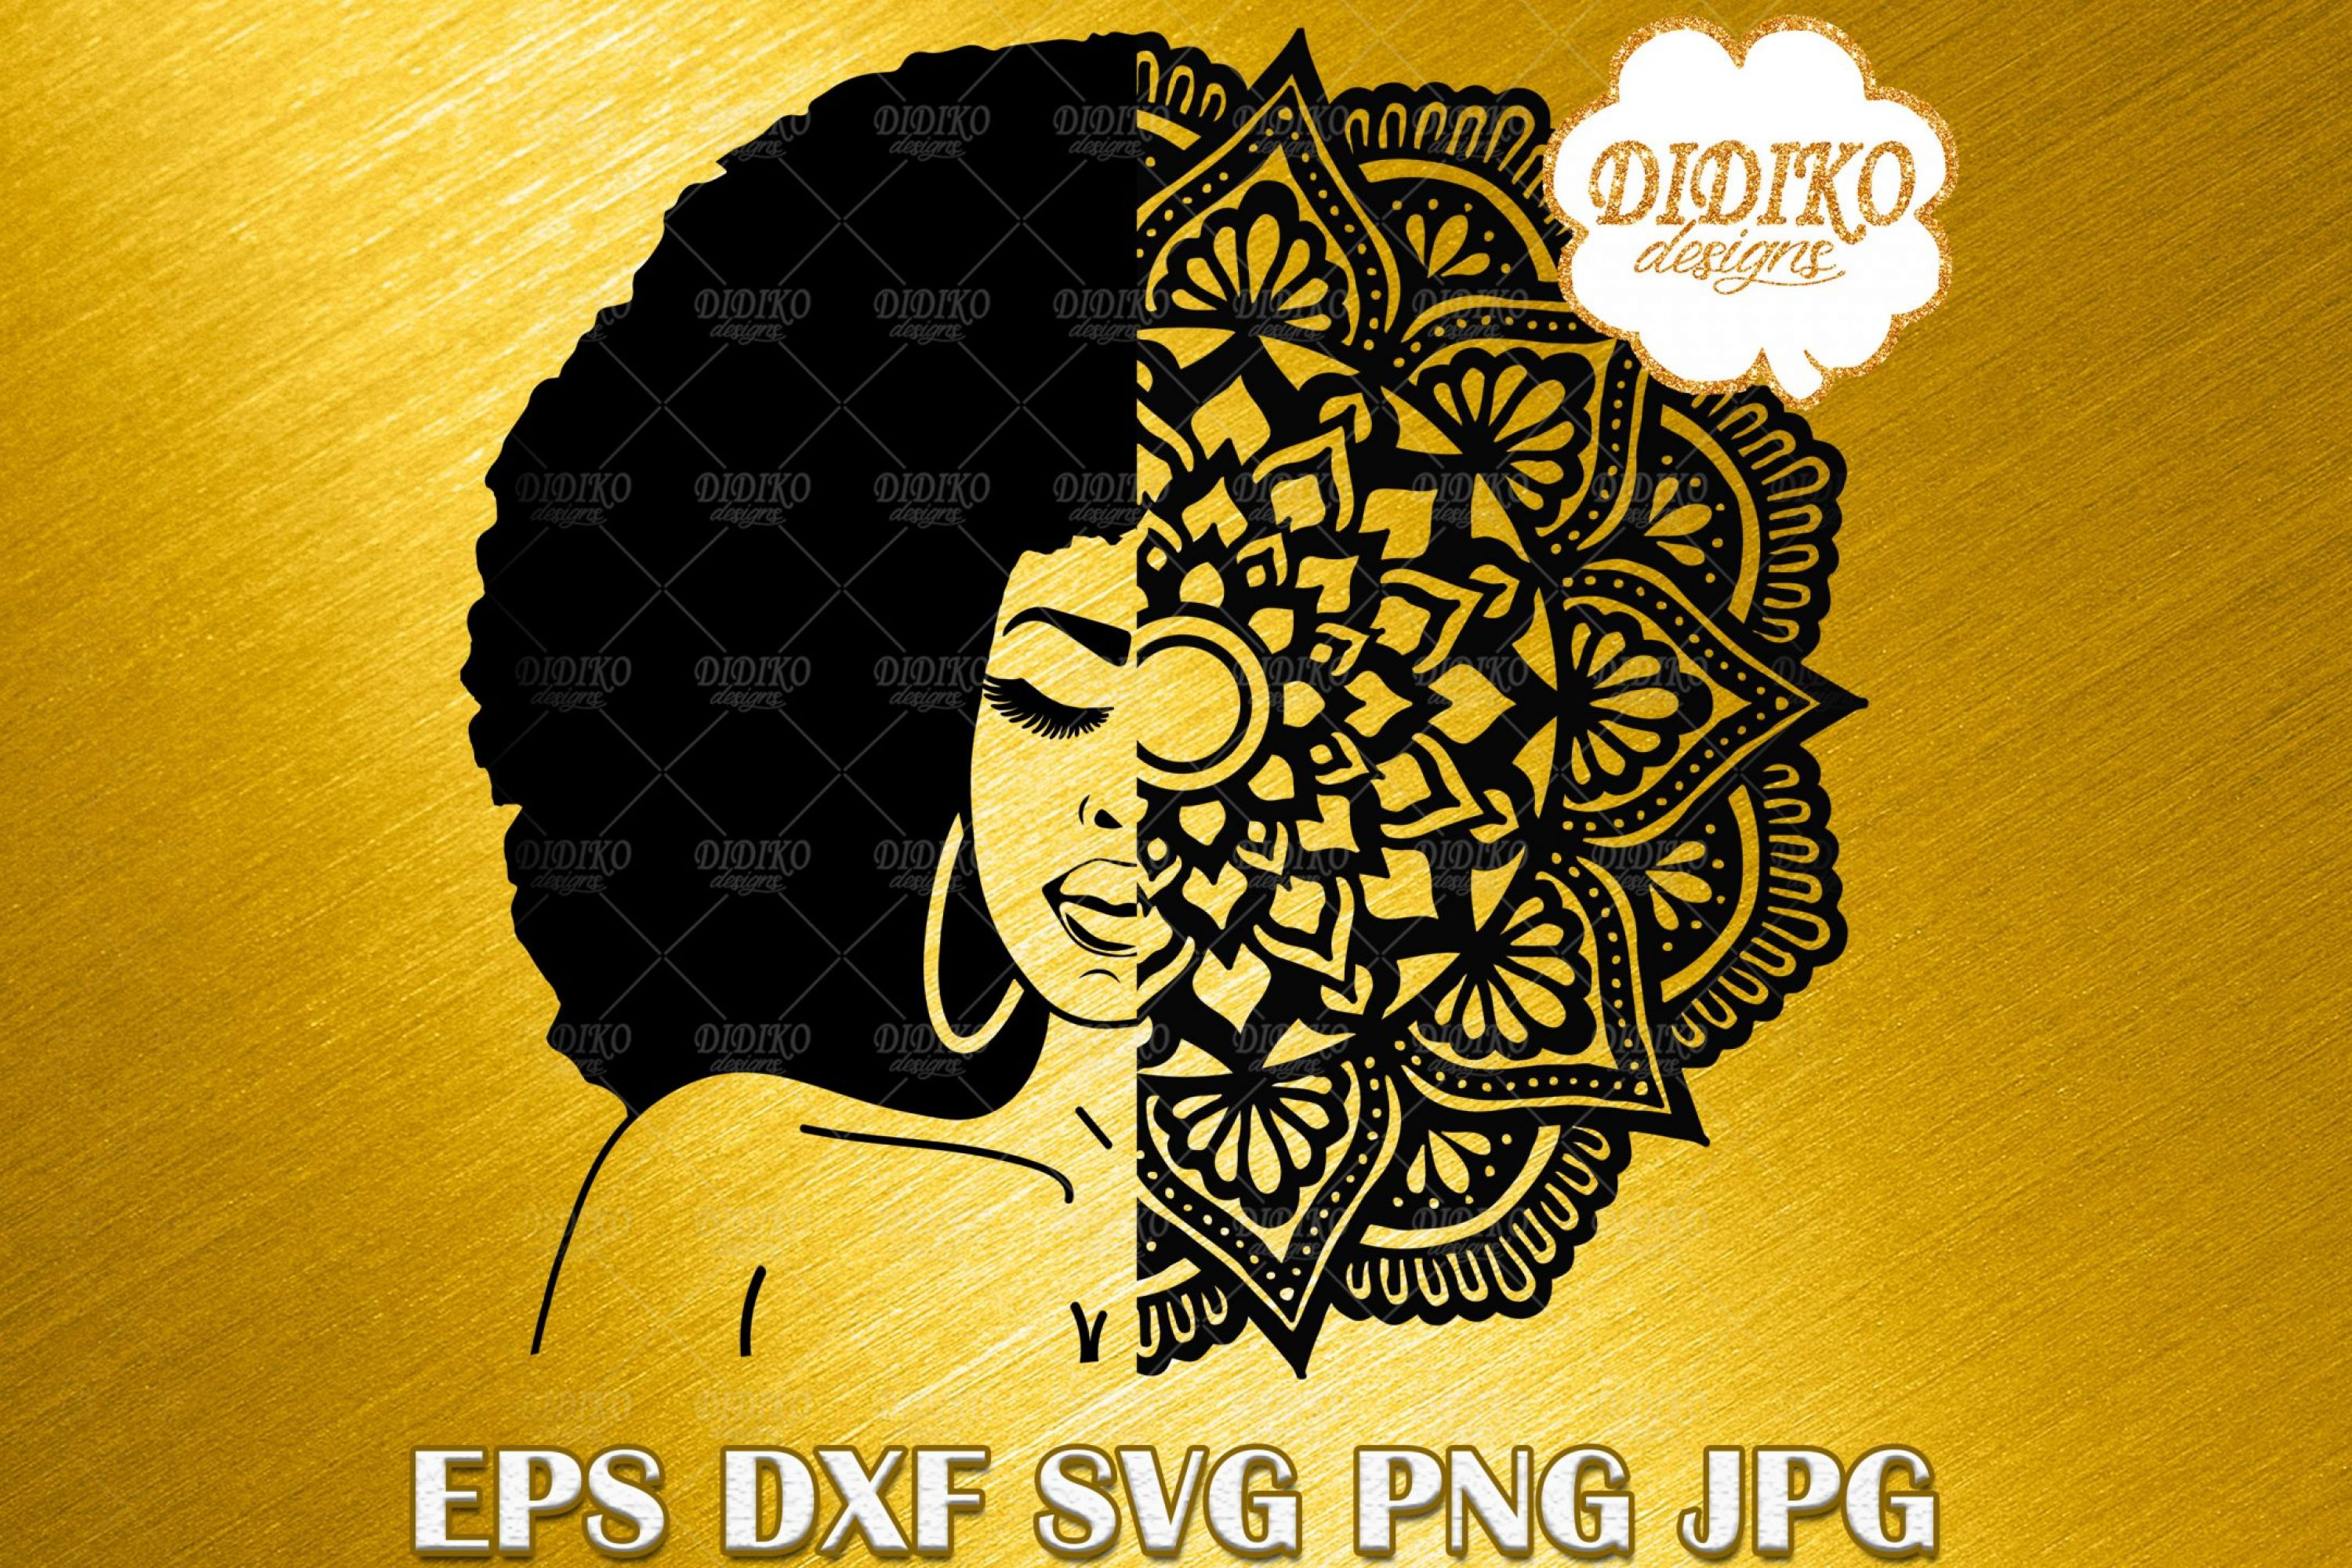 Afro Woman SVG #1, Mandala SVG, Black Woman SVG, Afro Woman Vector, Silhouette, Cricut File